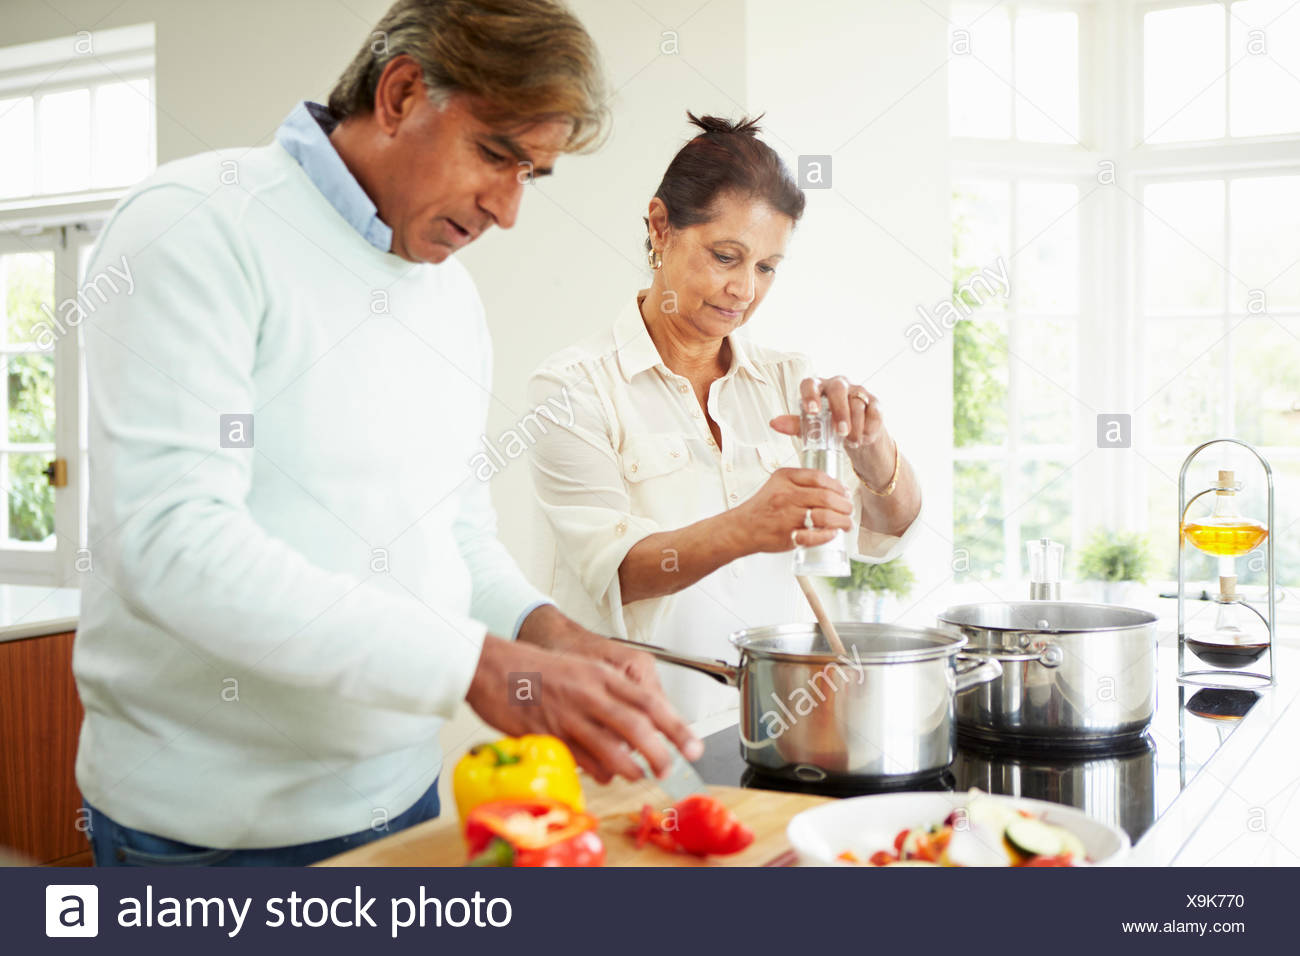 Senior Indian Couple Cooking Meal At Home Stock Photo 281320564 Alamy